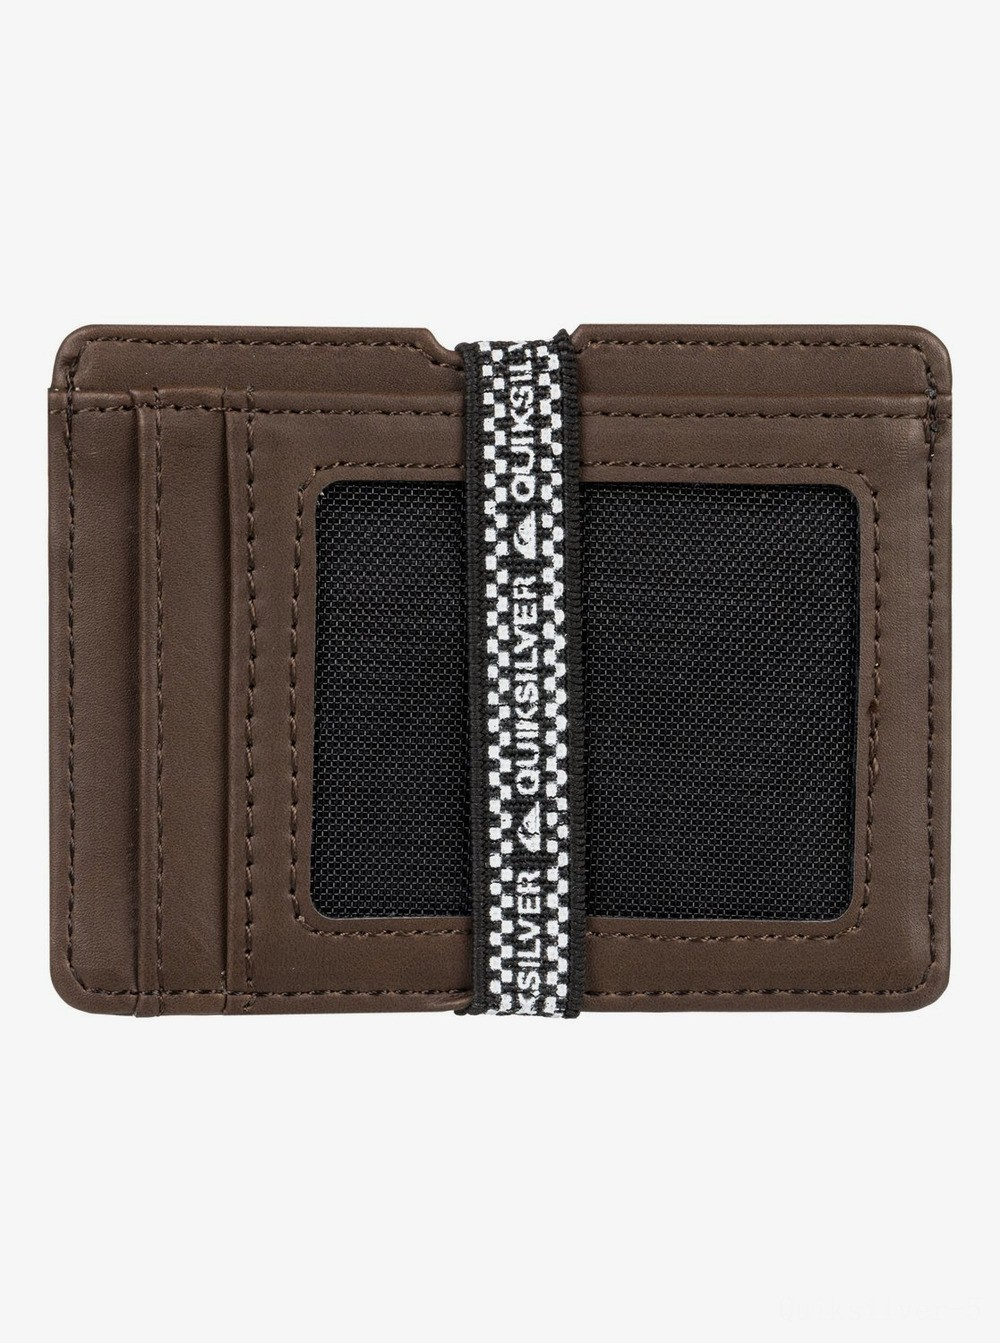 best price floker card holder - chocolate brown last chance limited sale